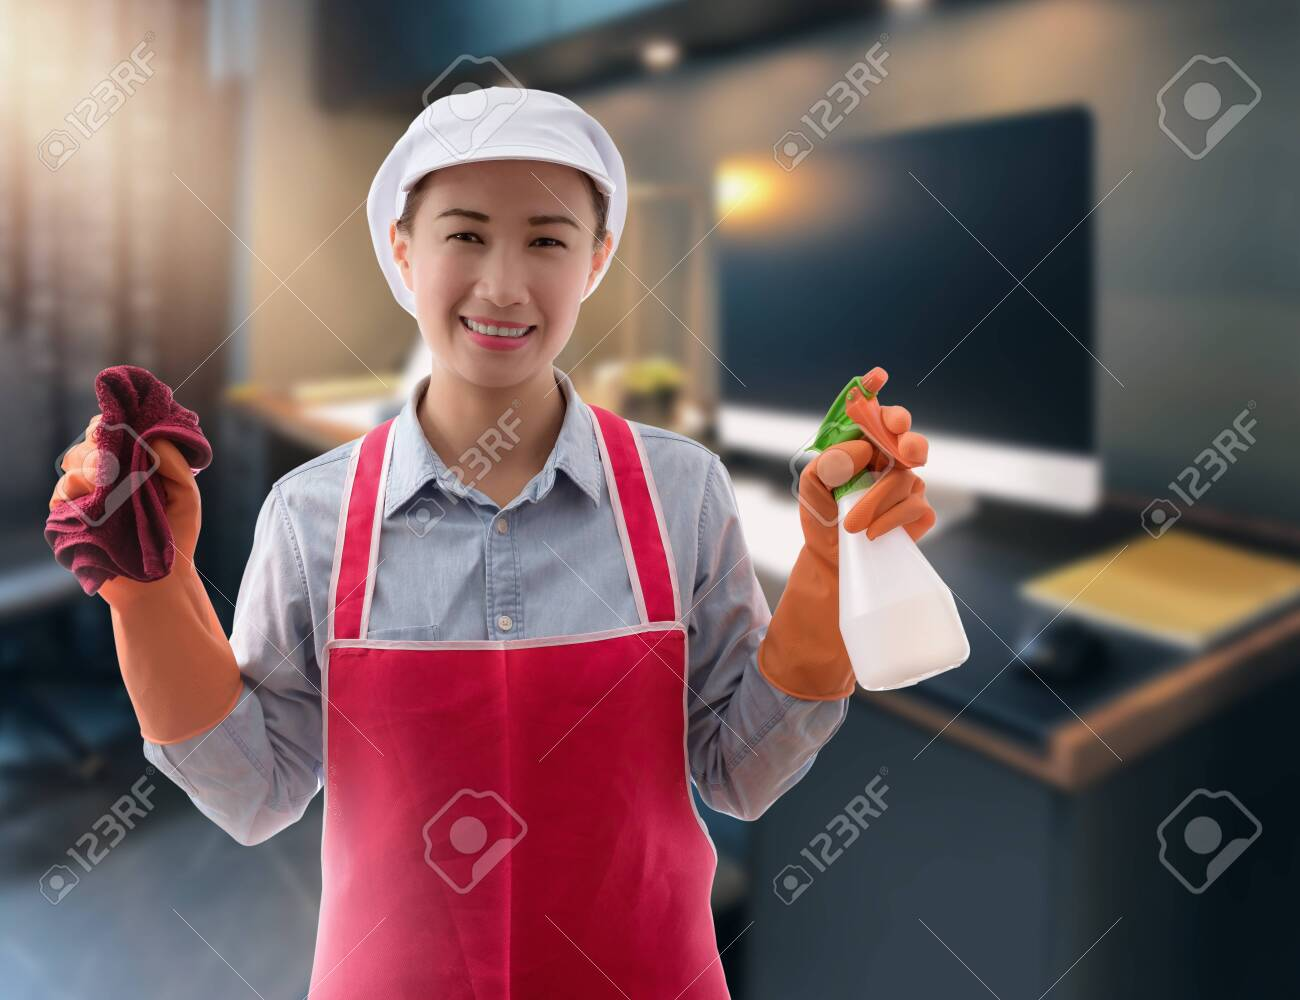 Cleaning concept Woman with bucket of washing fluids and rags in hands and cleaning equipment ready to clean house on blurred workingroom background - 147554605